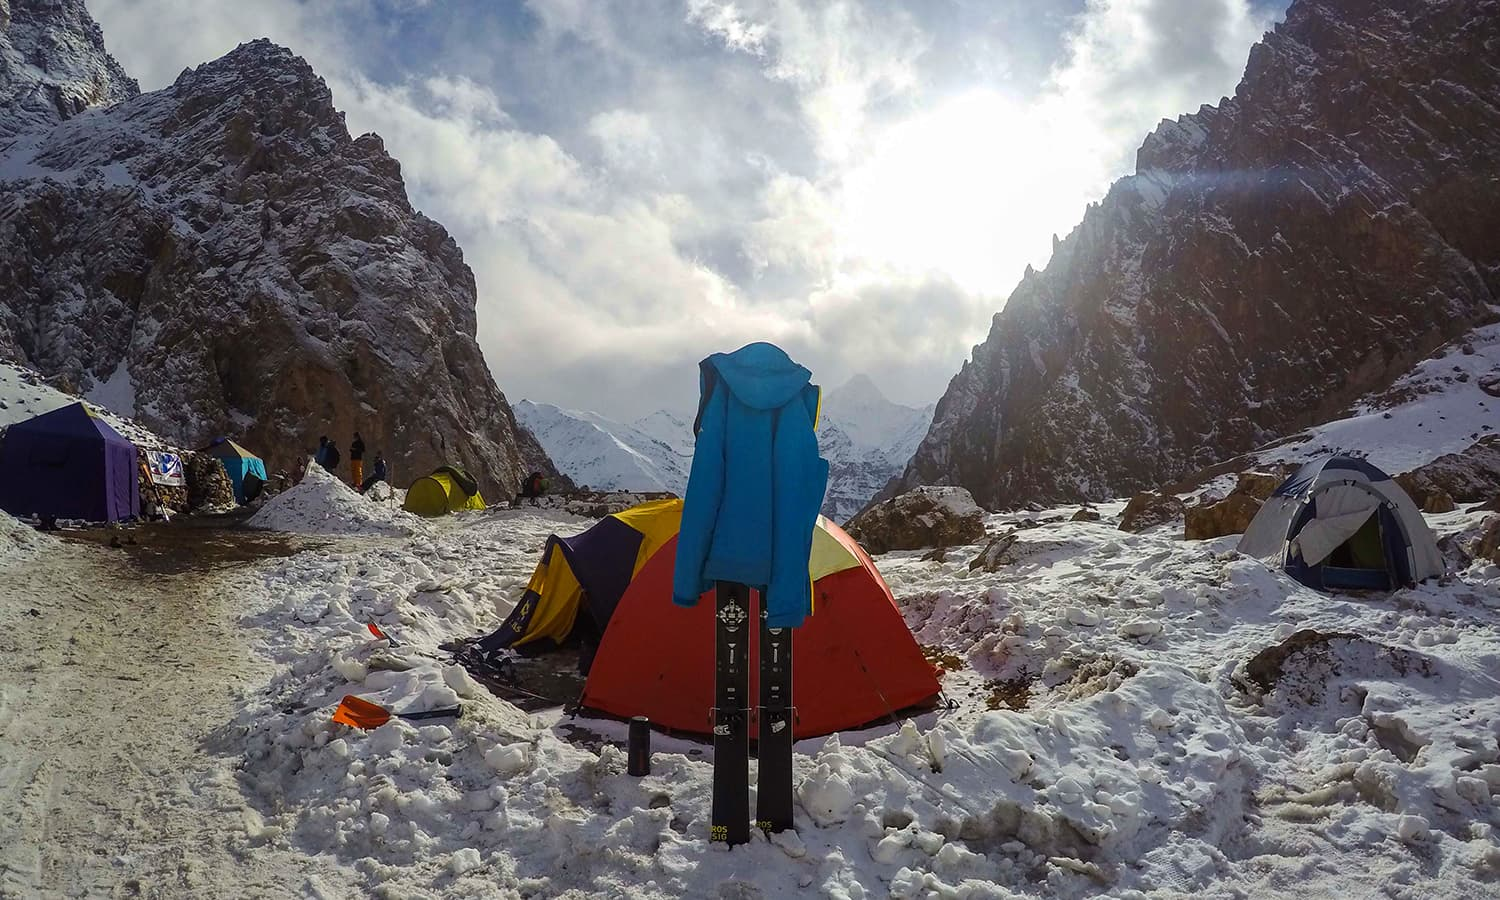 Camping in the snow and skiing at 4,000m in Pakistan. — Photo by author